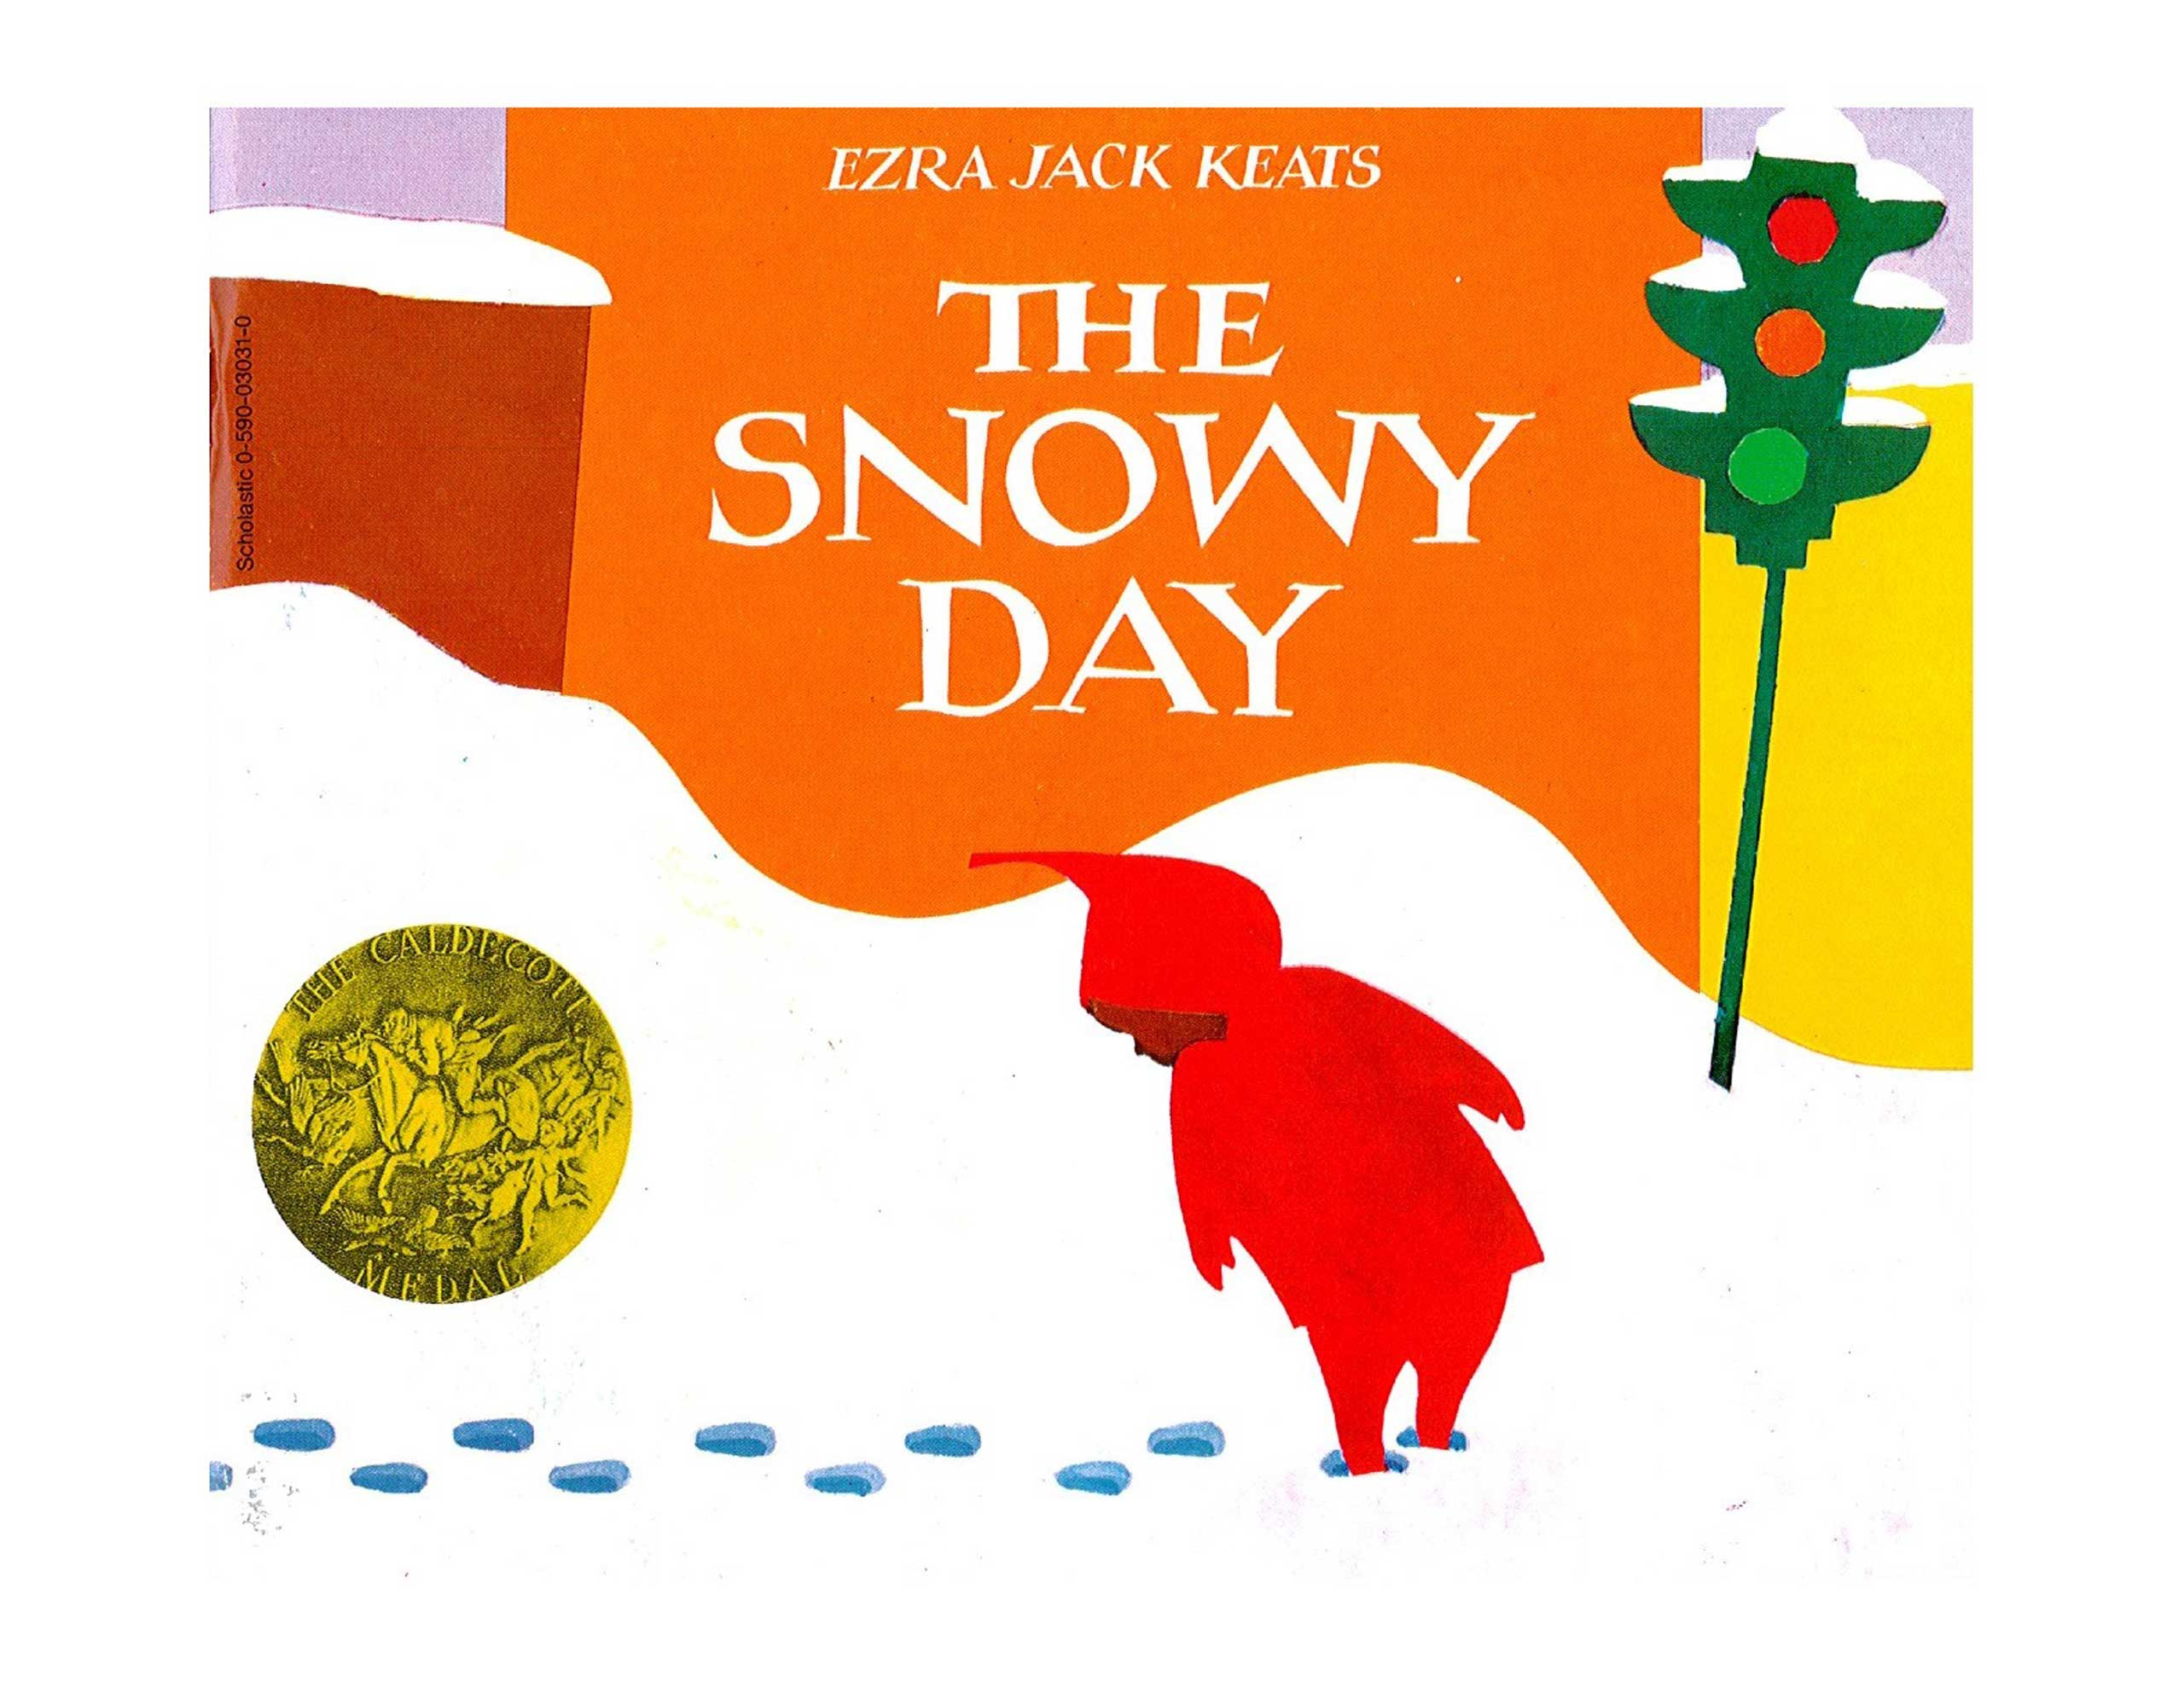 The Snowy Day, by Ezra Jack Keats.                                                                                                                             The journey of Peter through a snowbound New York City made for a milestone: as a successful children's story focused on a black protagonist, it broke down barriers many white editors may have never noticed. But Keats' book is memorable too for the sheer beauty of its collage illustrations.                                                                                             Buy now: The Snowy Day